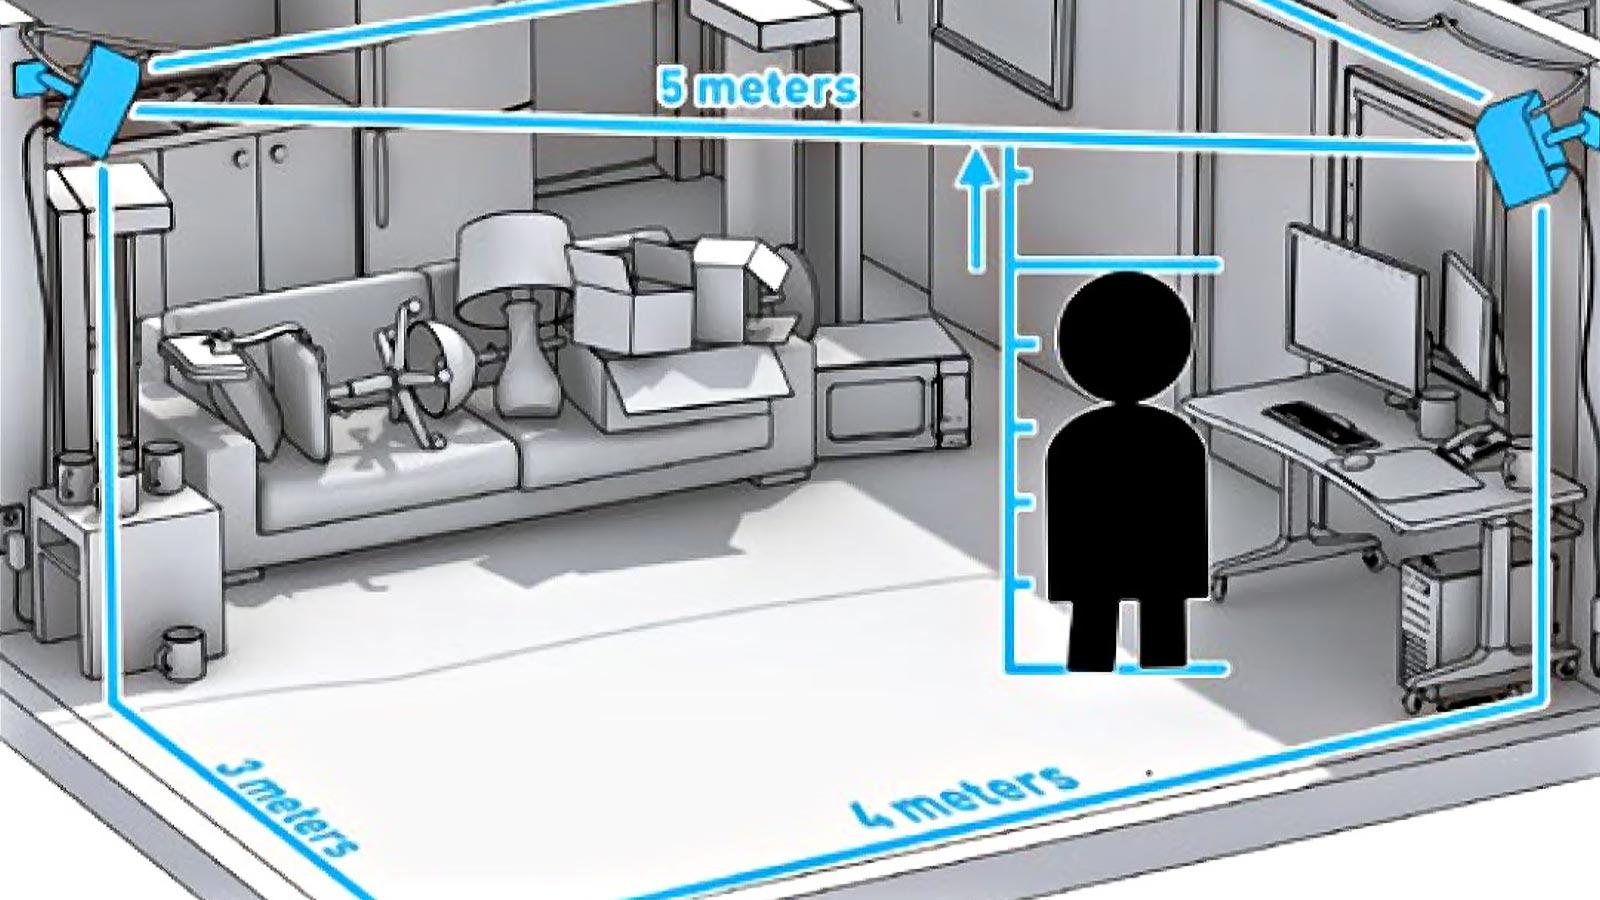 Graphic of a person in a room with space measurements for HTC Vive VR space requirements